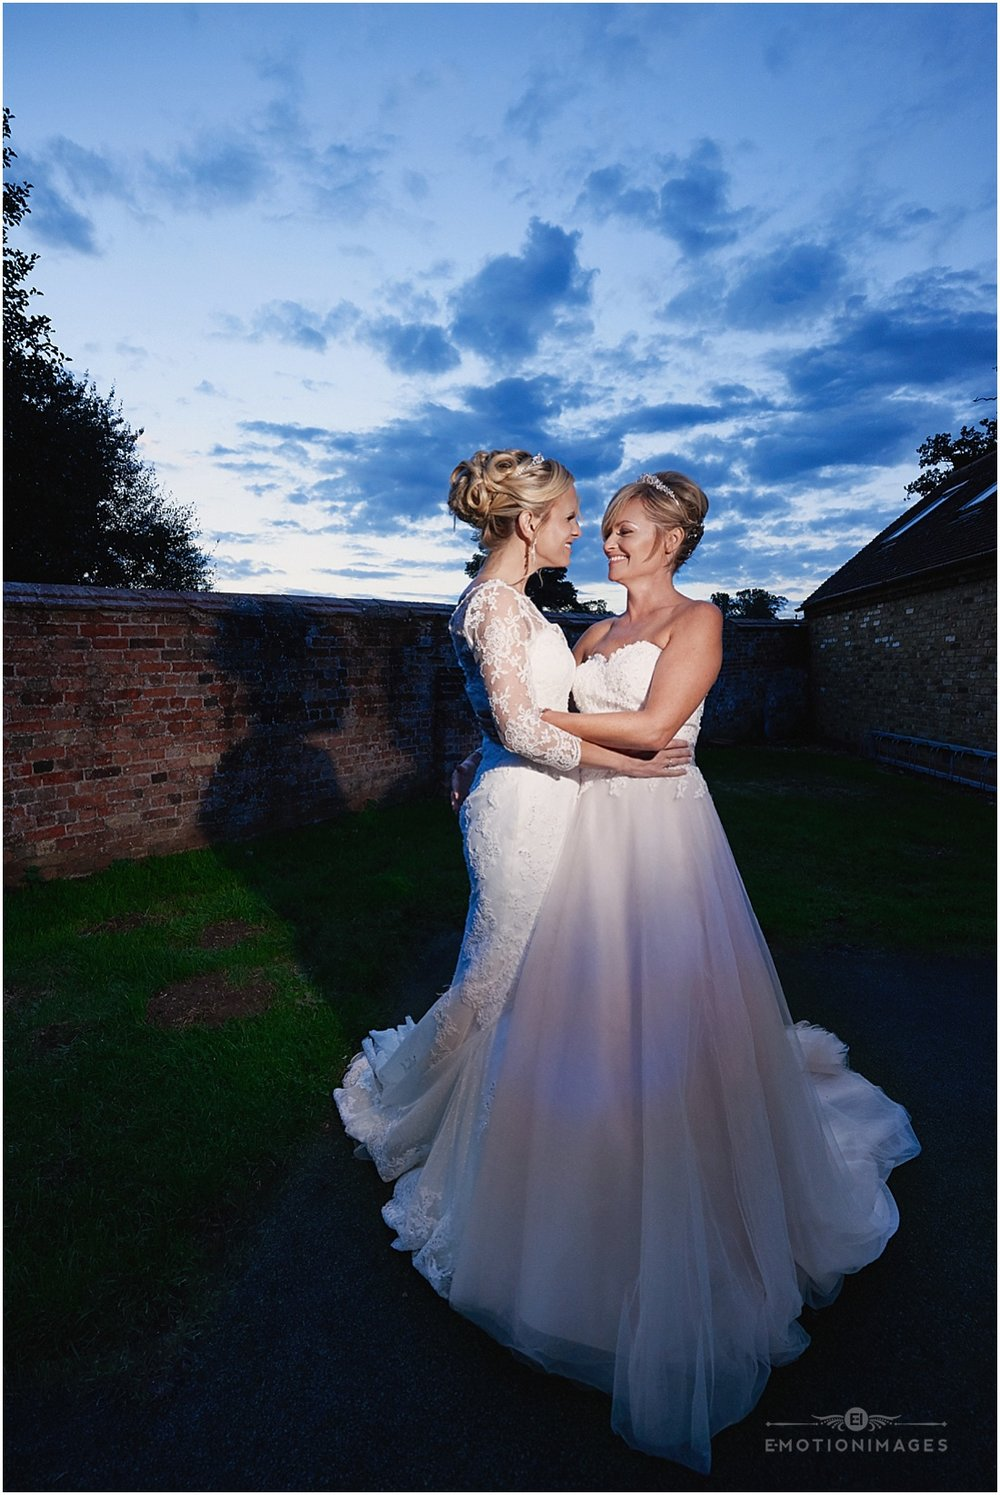 eversholt-hall-wedding-photography_e-motionimages_015.JPG